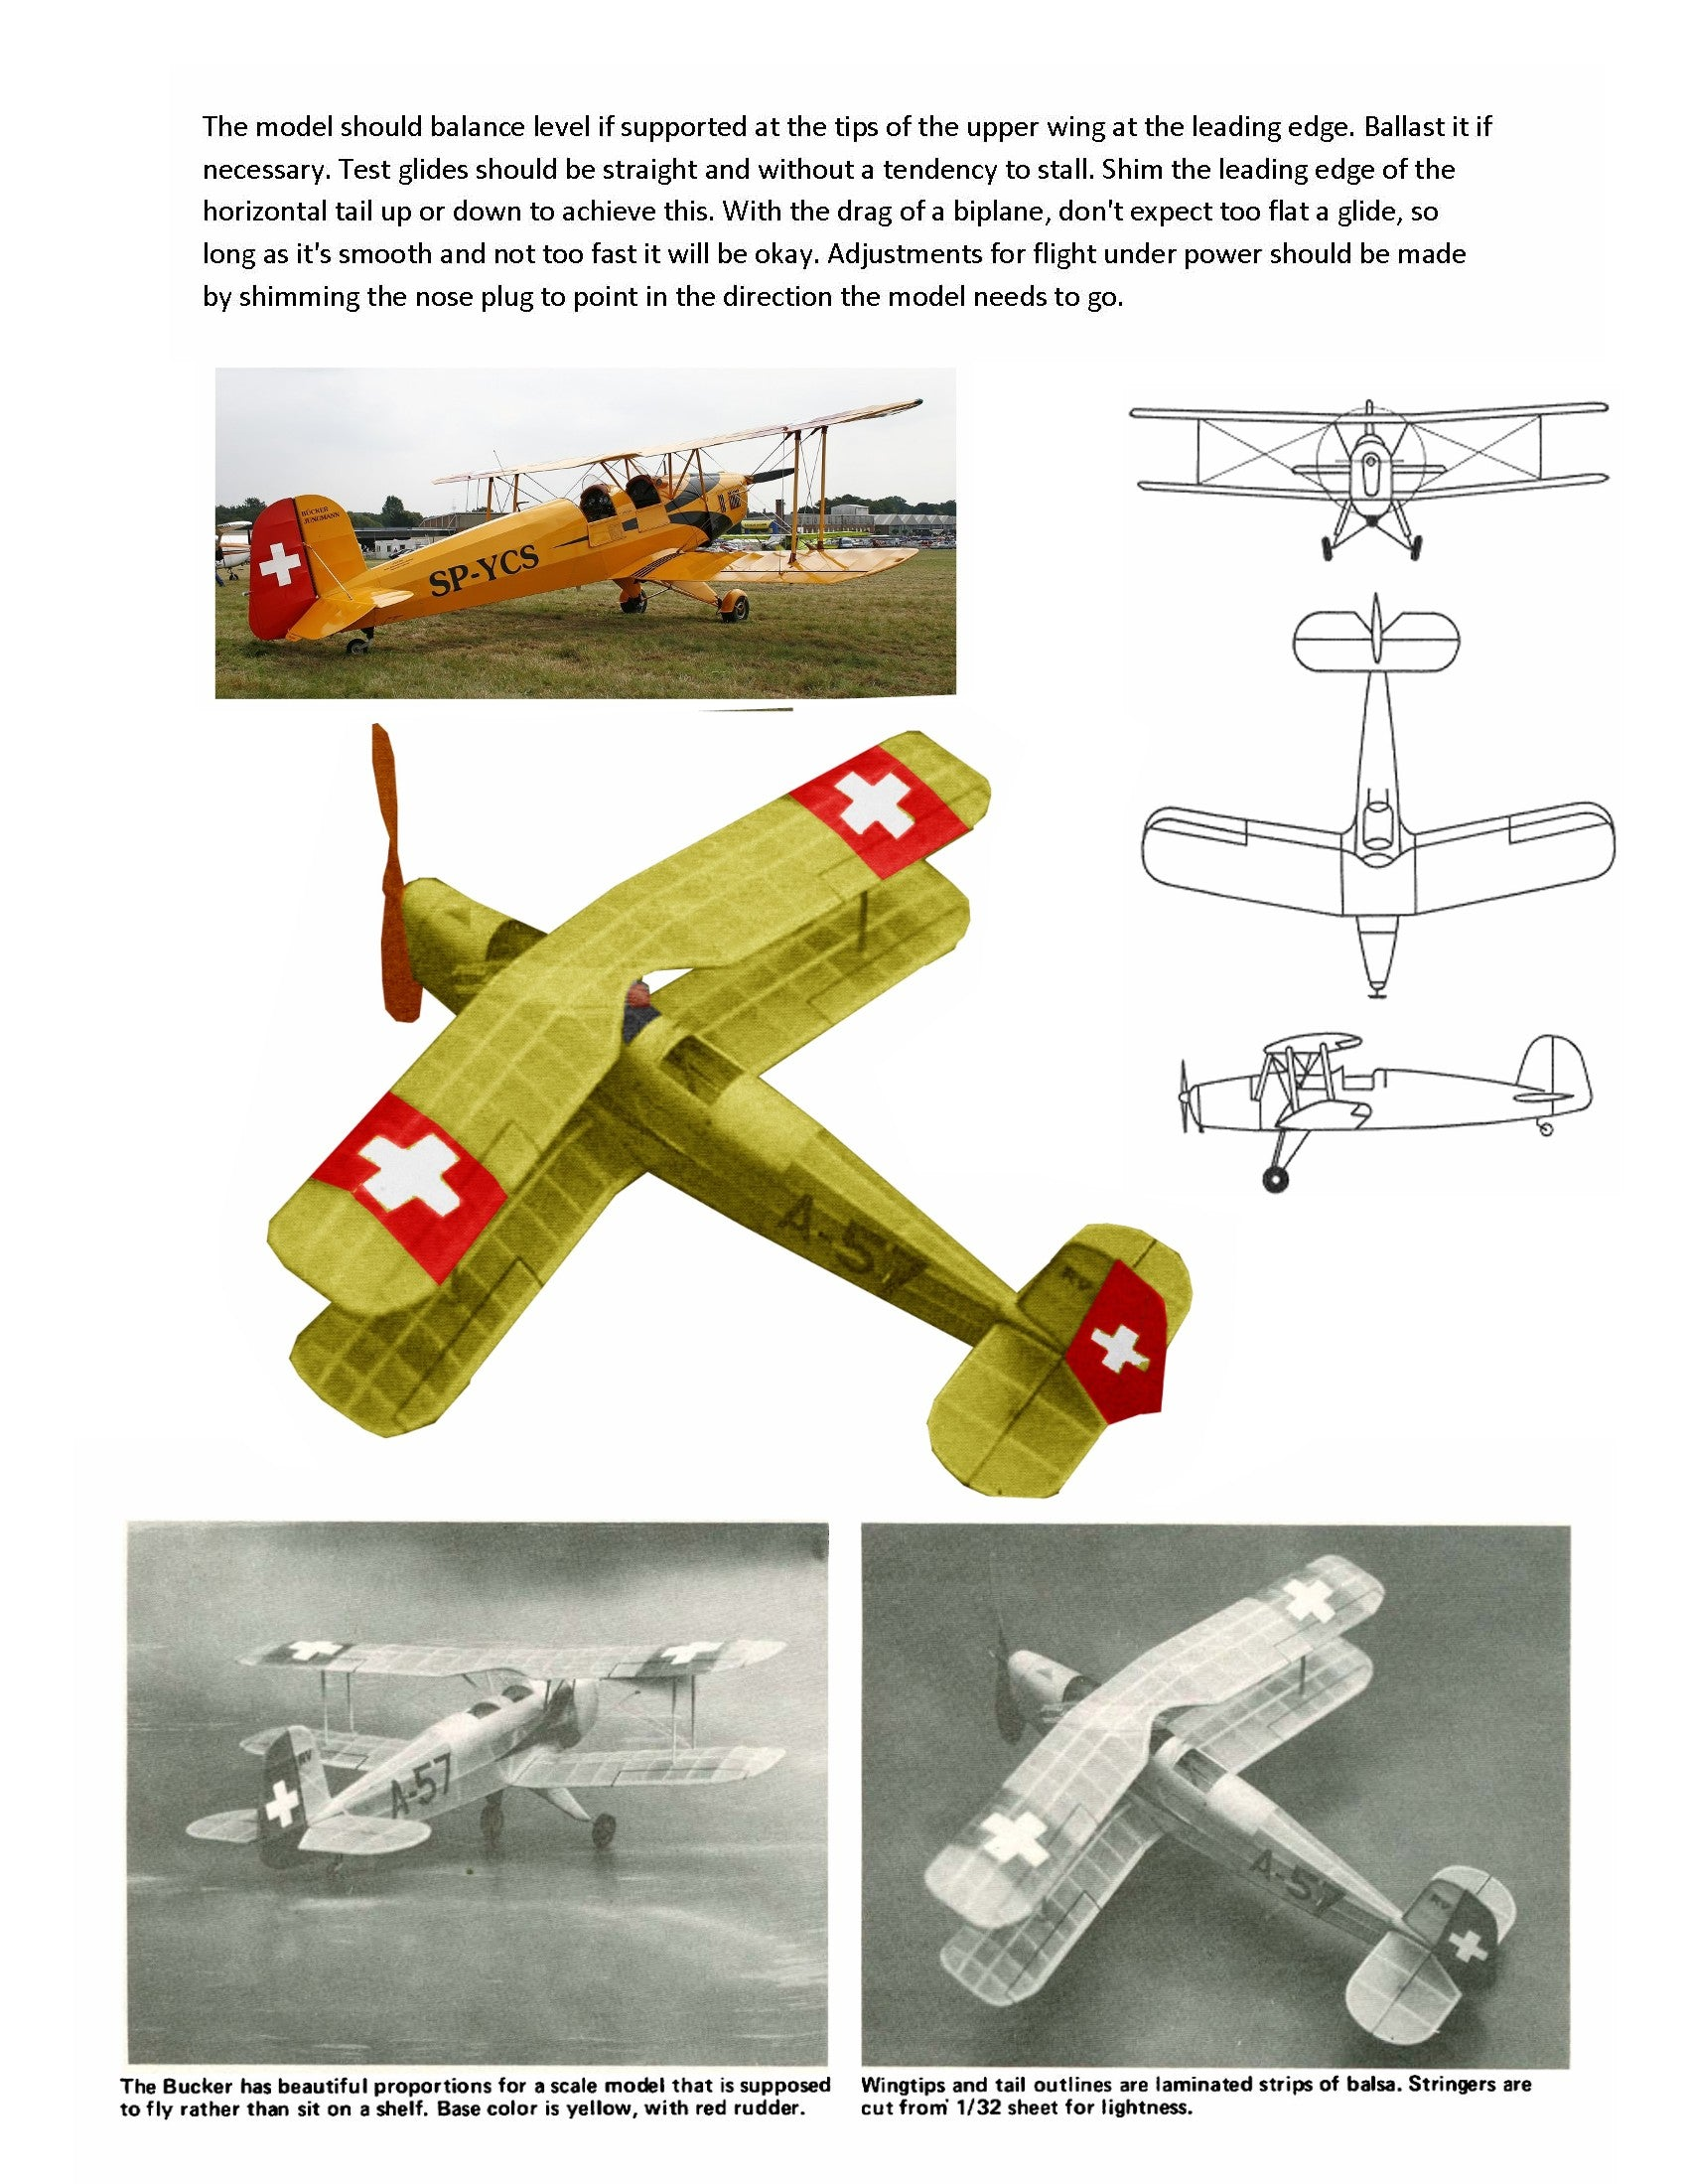 Full Size Printed Peanut Scale Plans BUCKER JUNGMANN  the famous German primary trainer